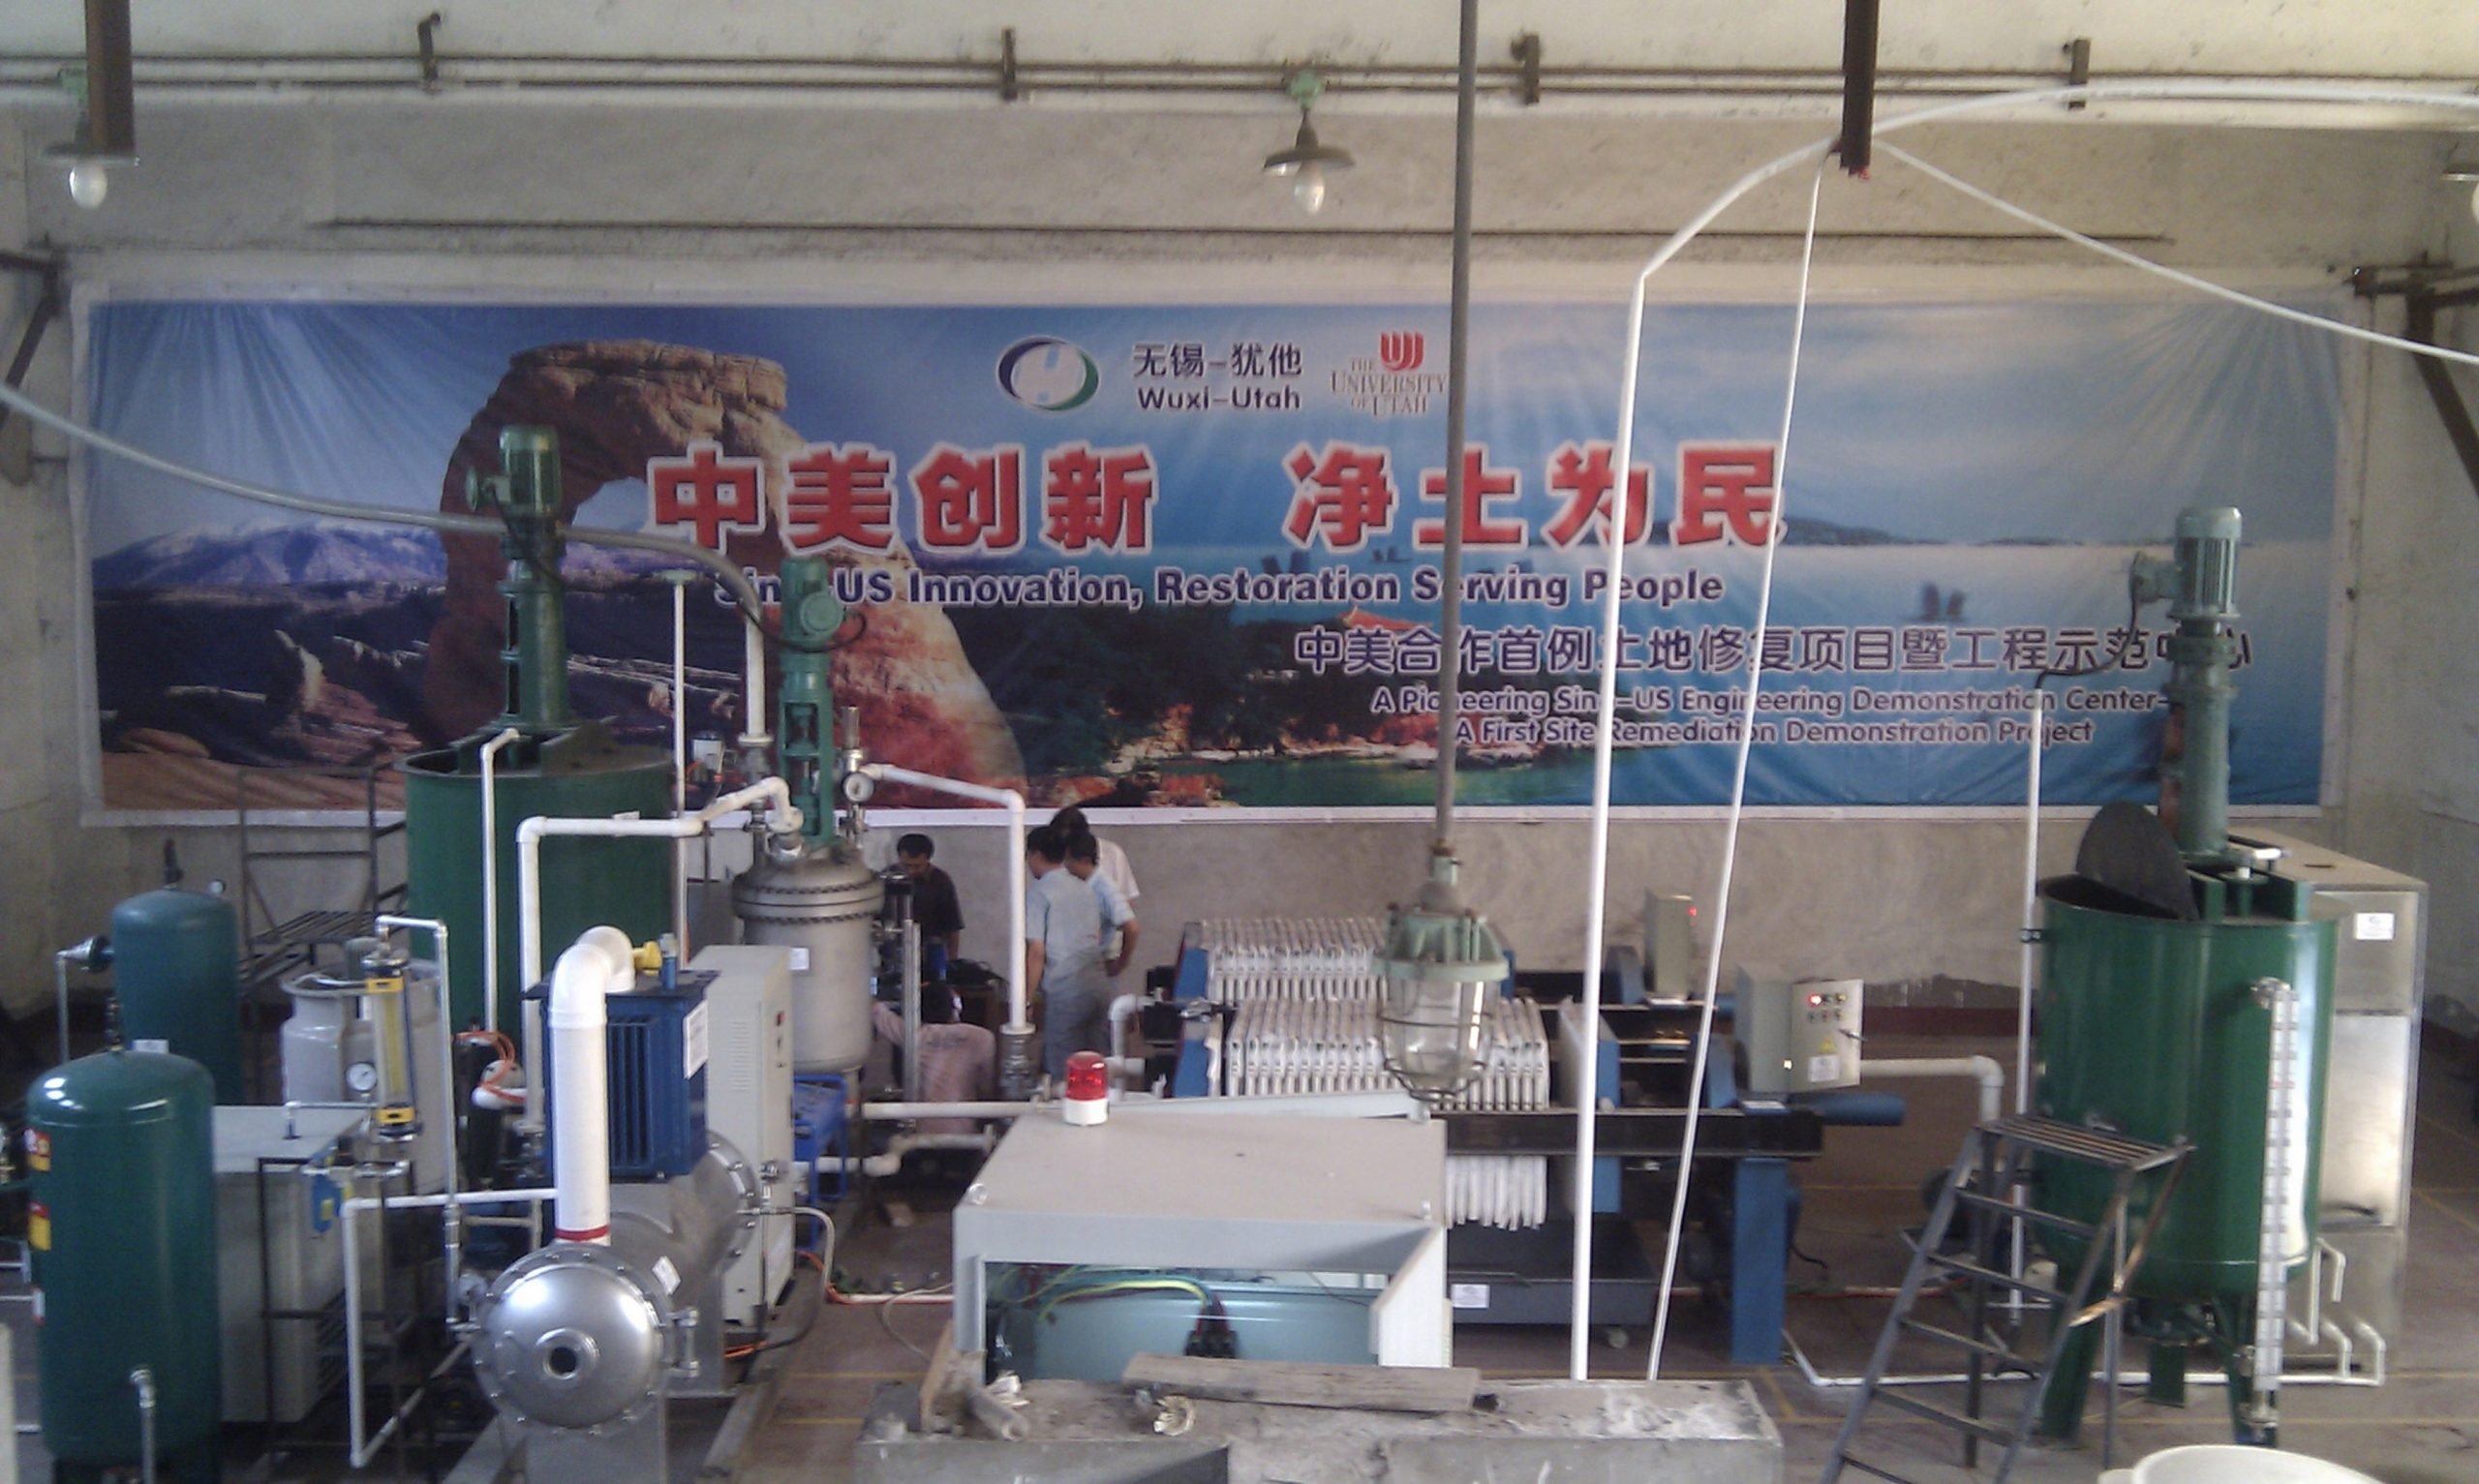 University of Utah civil and environmental engineer Andy Hong has teamed up with Chinese environmental cleanup company Honde LLC to use Hong's method of heightened ozonation treatment or HOT to clean metals and other contaminants from polluted soil along the shores of Lake Taihu near Wuxi, China. The treatment system at Lake Taihu is shown in this photo. The HOT reactor or vessel where ozone treatment occurs is the vertical, silver-colored tank left of center. It is an essential component in the treatment system that also includes an ozone generator, compressor, air tank, green mixing tanks, press filter and plumbing.